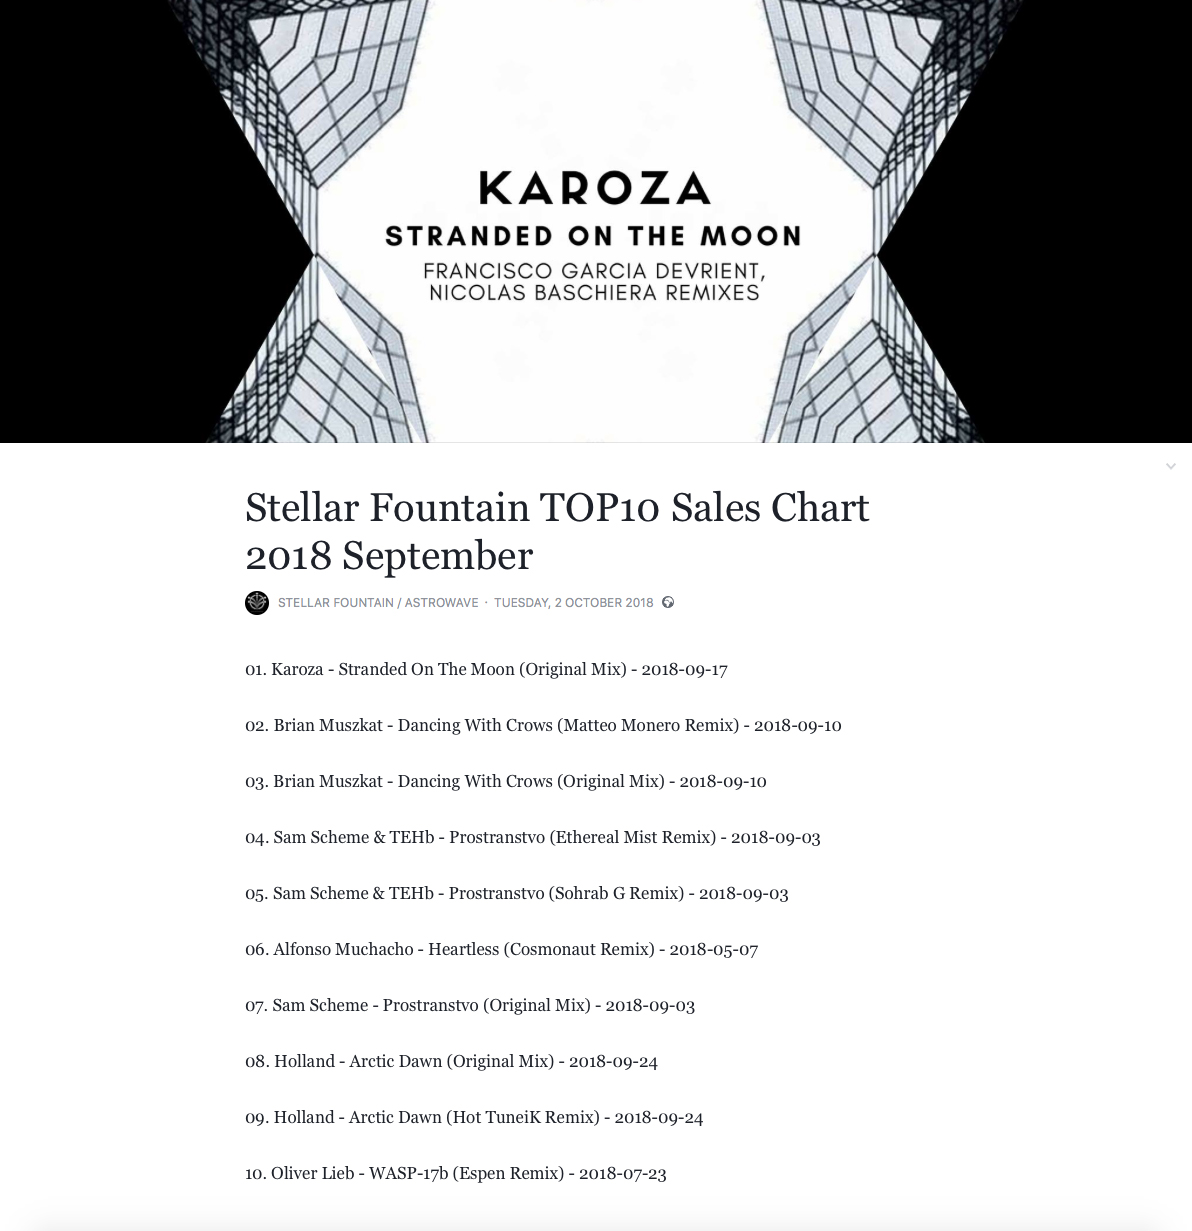 Stellar Fountain Top 10 Sales Chart - Karoza